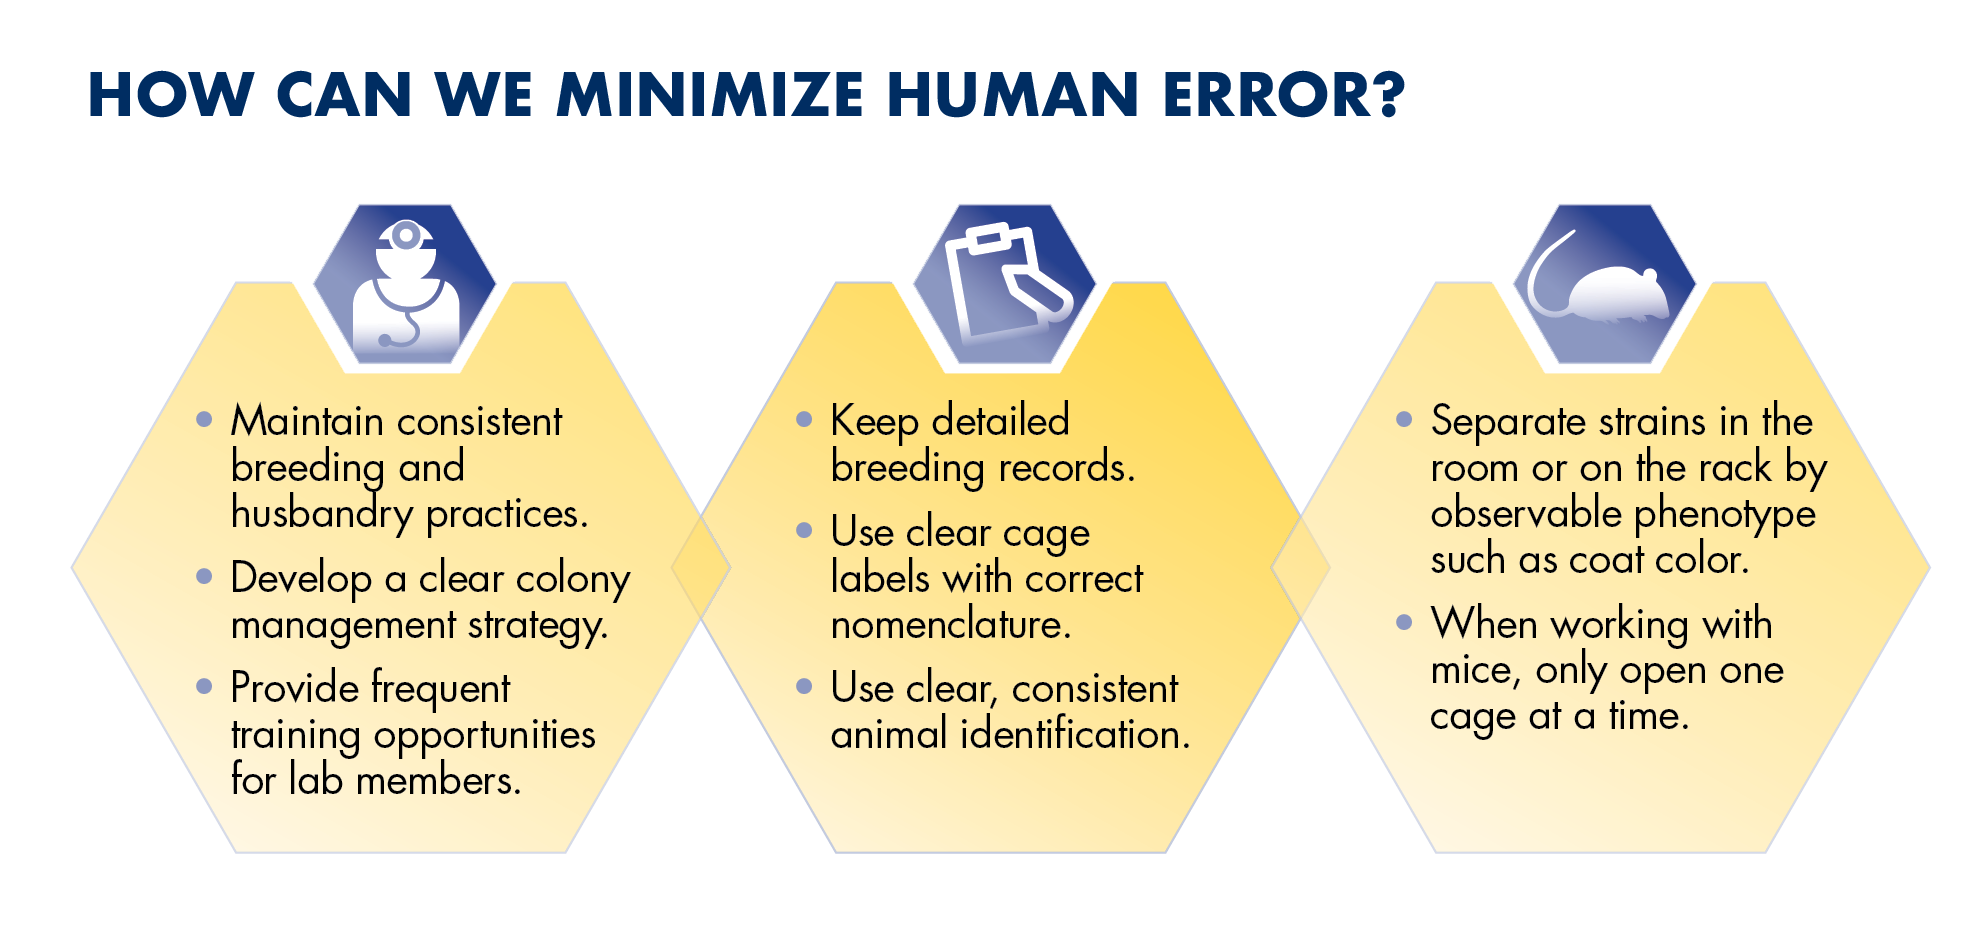 Three hexagon icons that explain how human error can be minimized through proper genetic quality controls